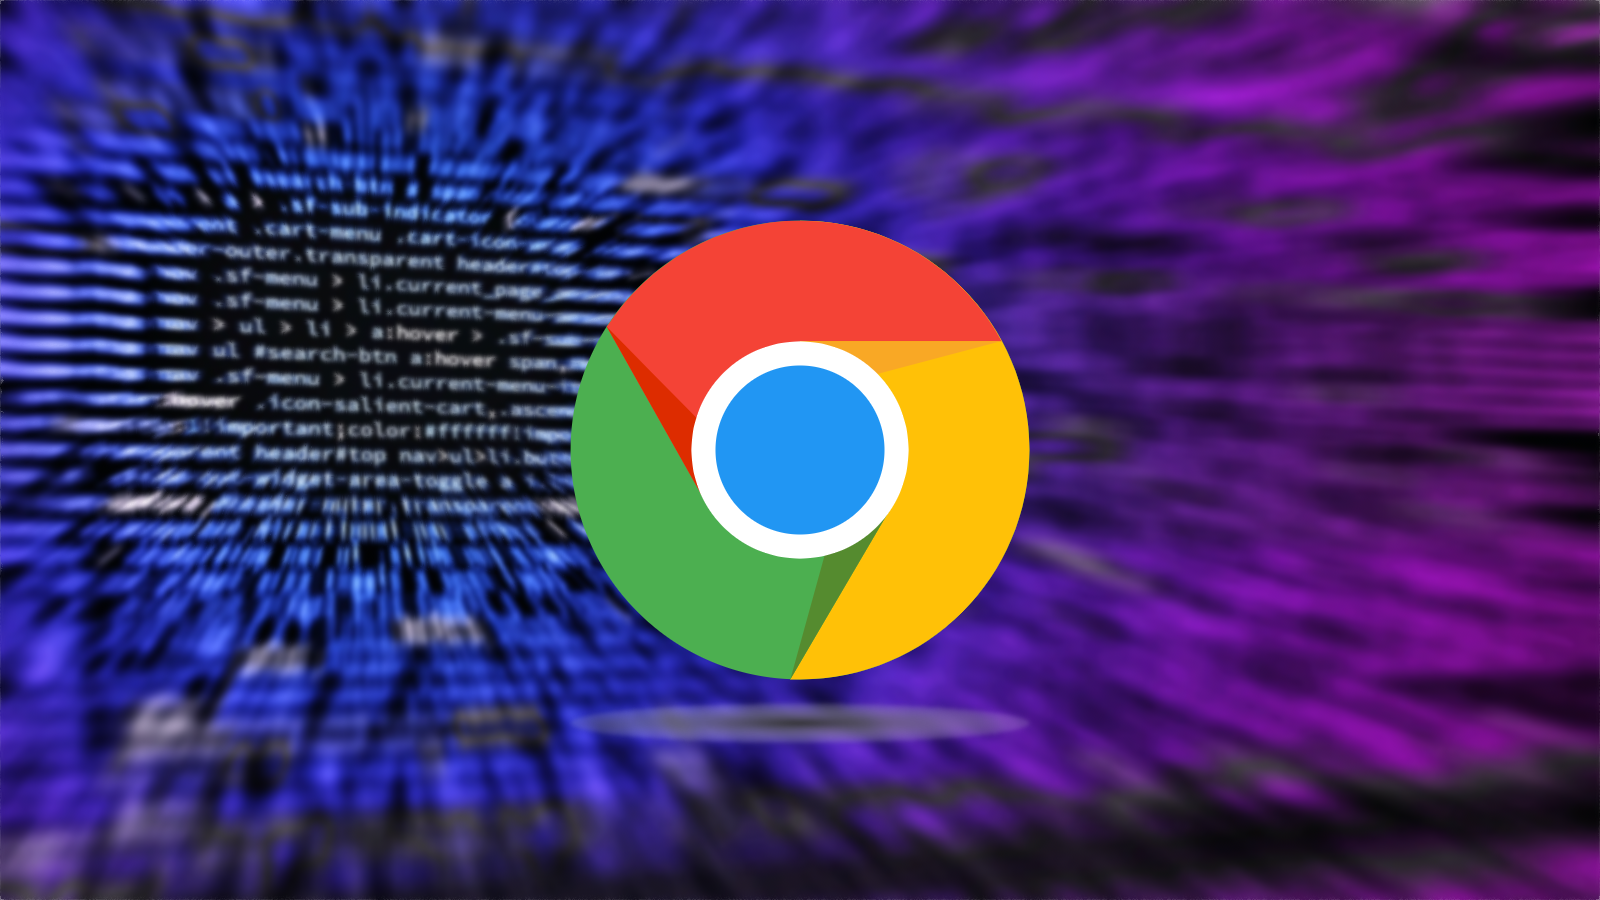 Google patches exploited zero-day in Chrome, update now